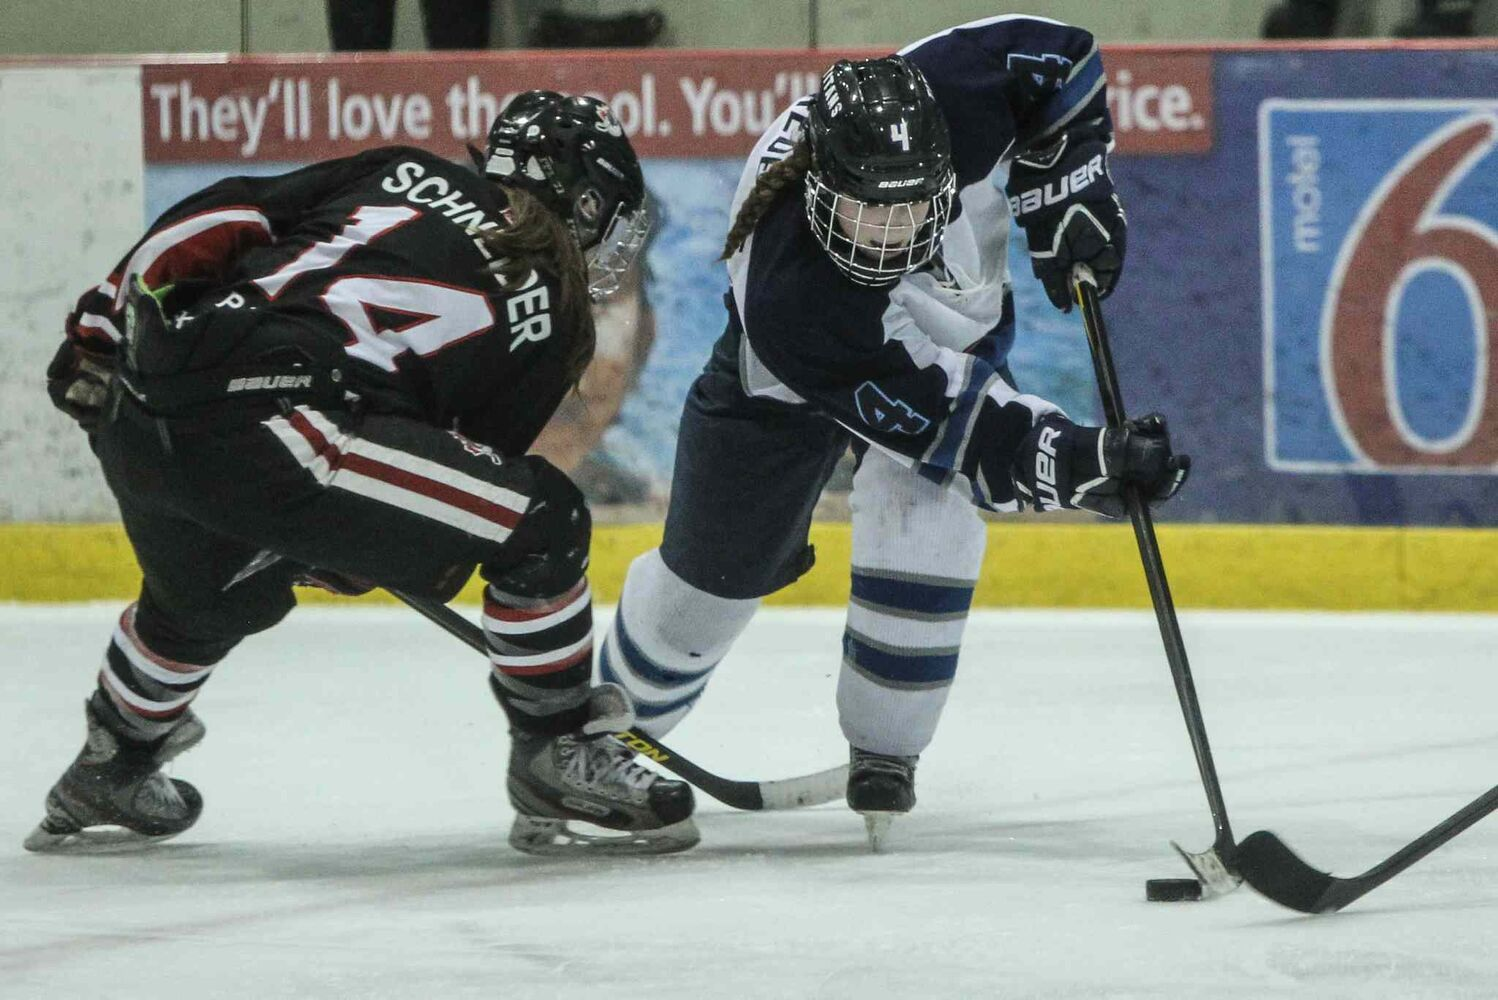 The Shaftesbury Titans' Justine Fredette stickhandles her way around the POEs' Malia Schneider in the third period.